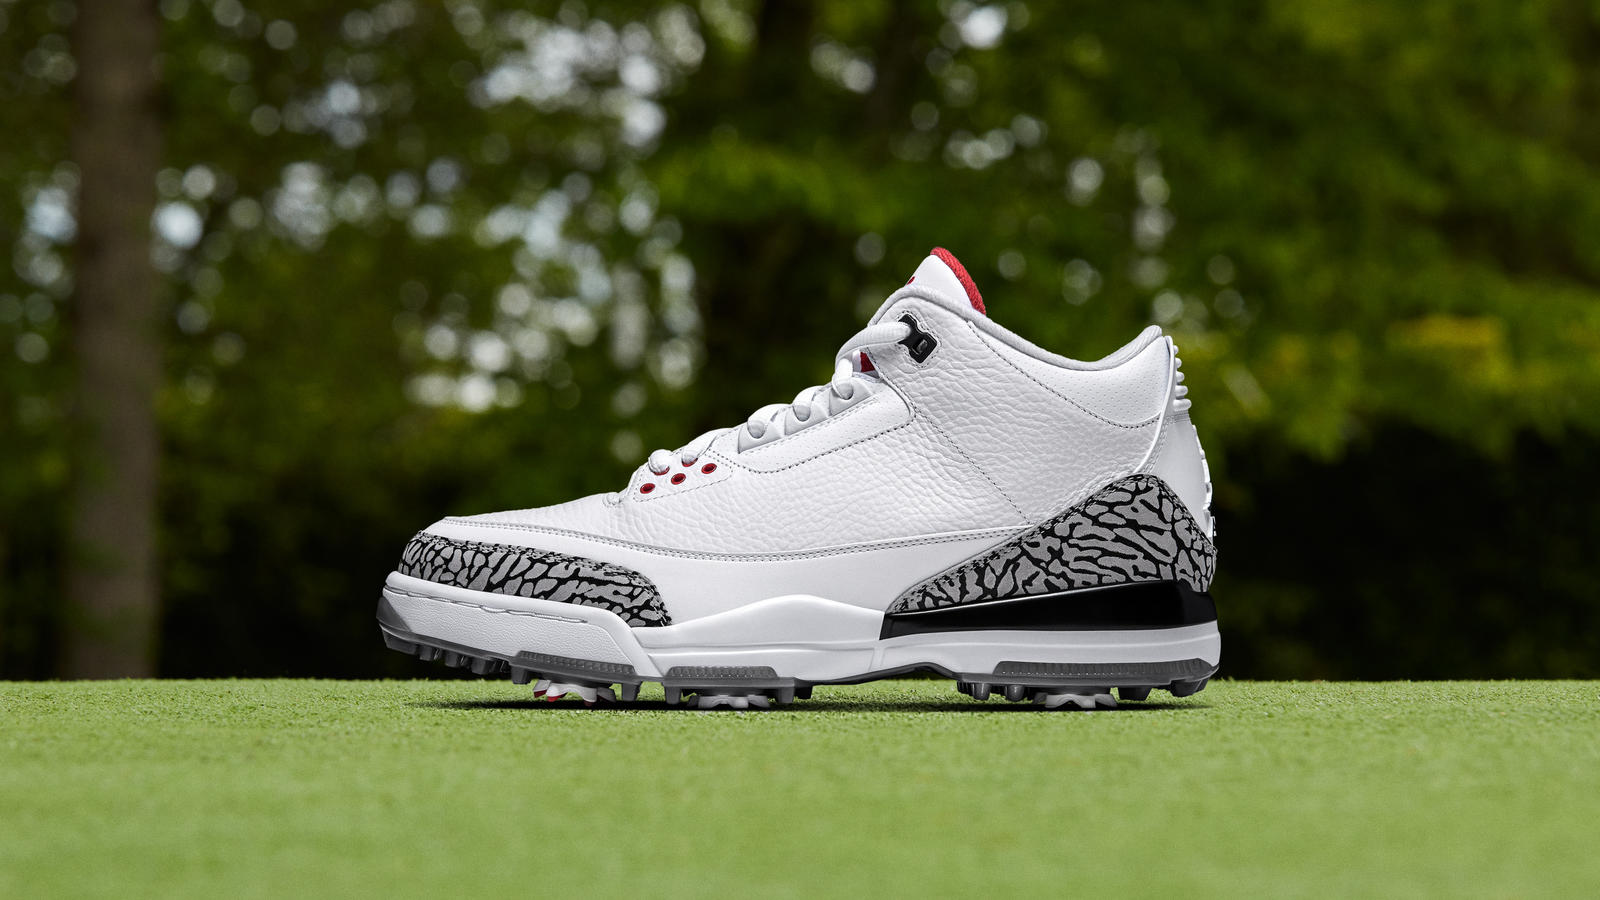 b1d2ac0ce95 Air Jordan III Golf - Nike News